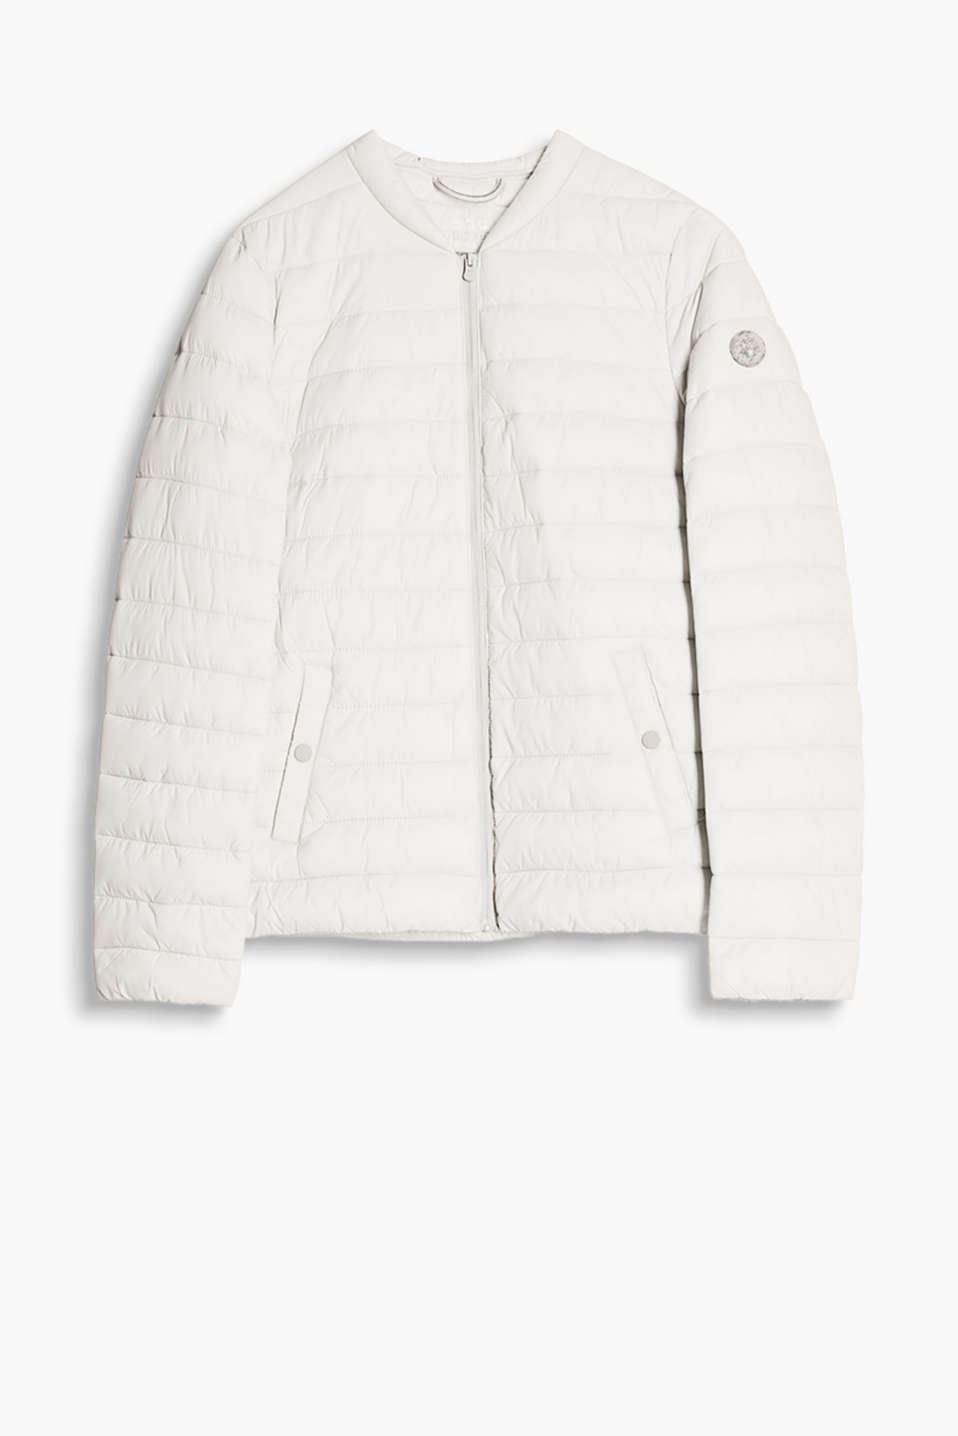 This matte quilted jacket with padding holds in the warmth yet feels extremely lightweight